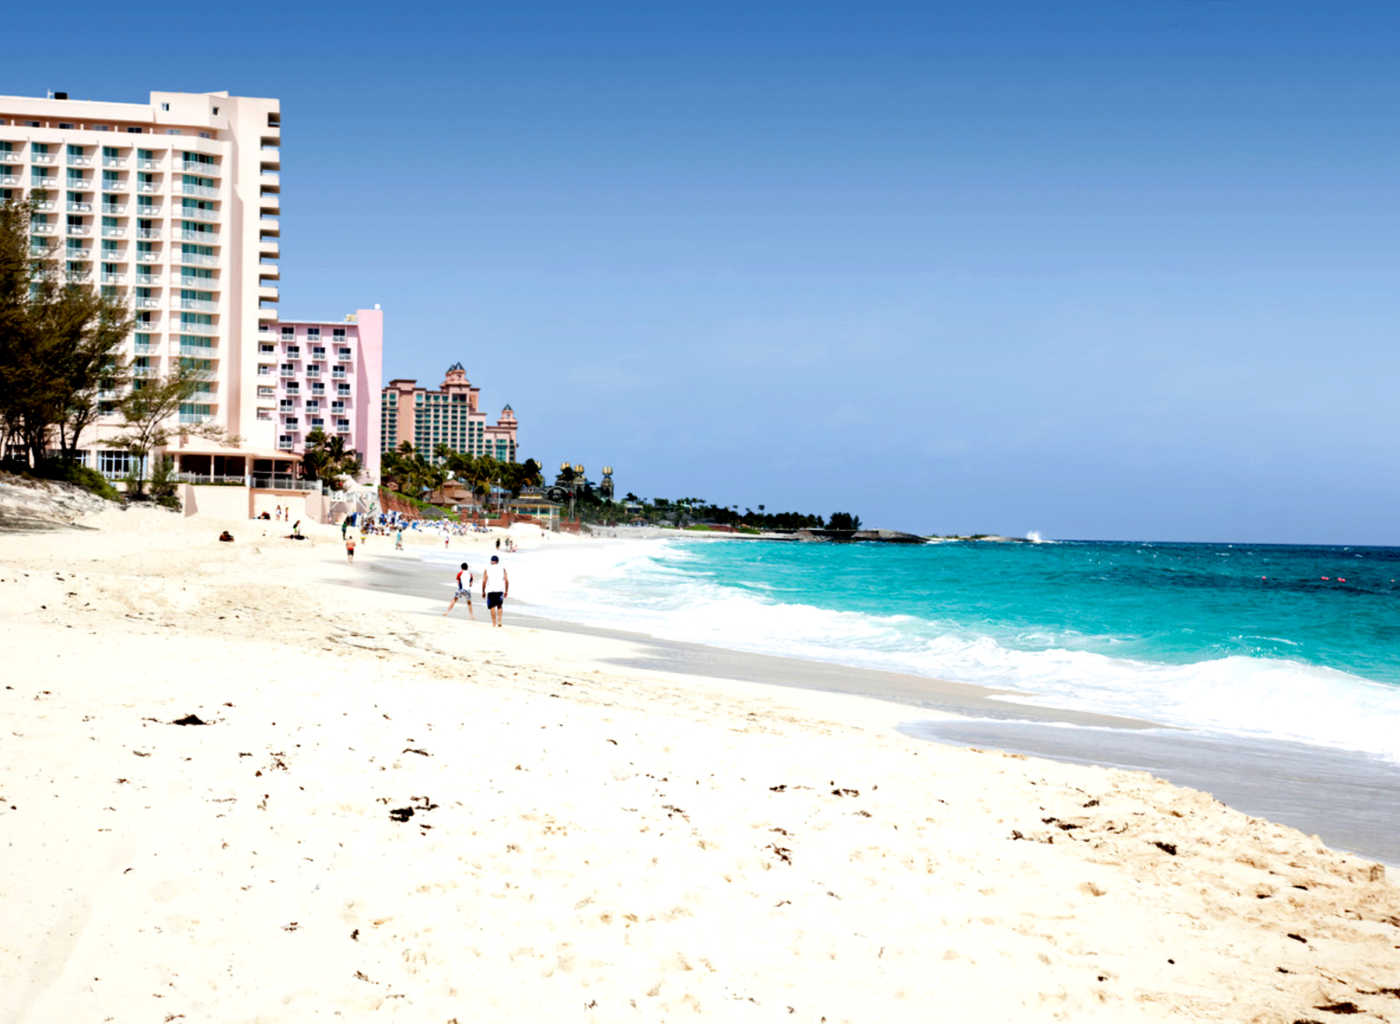 Vacation Package to the Bahamas | All-Inclusive Hotel Riu Palace